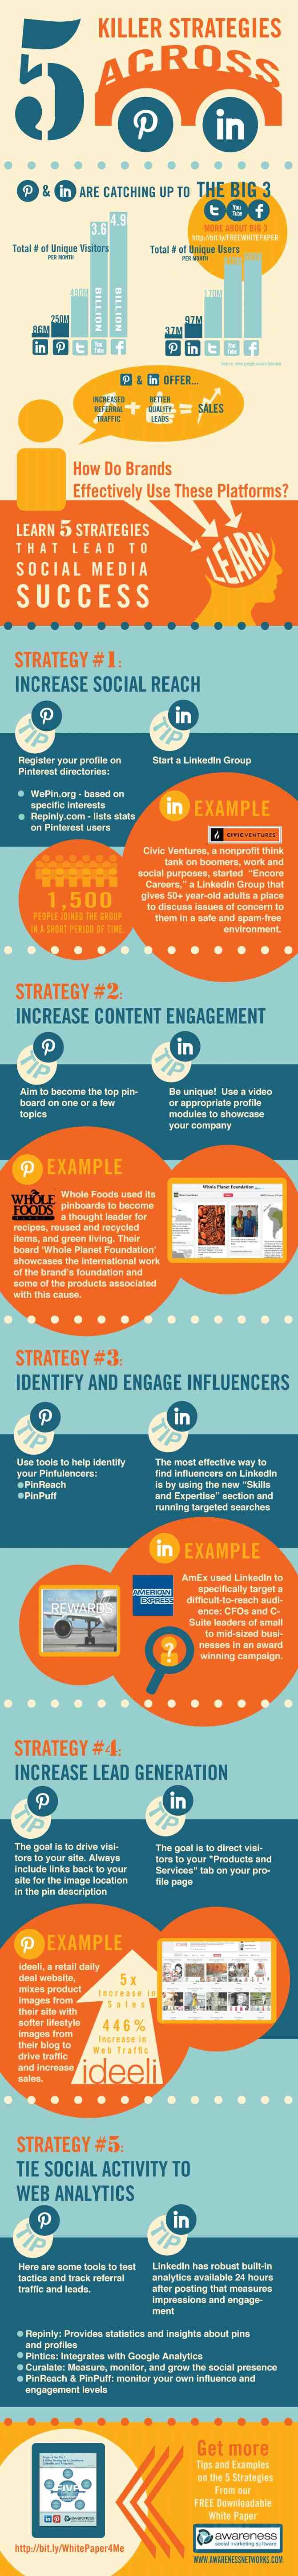 Beyond the Big 3: Strategies for Brands to Dominate Pinterest and LinkedIn